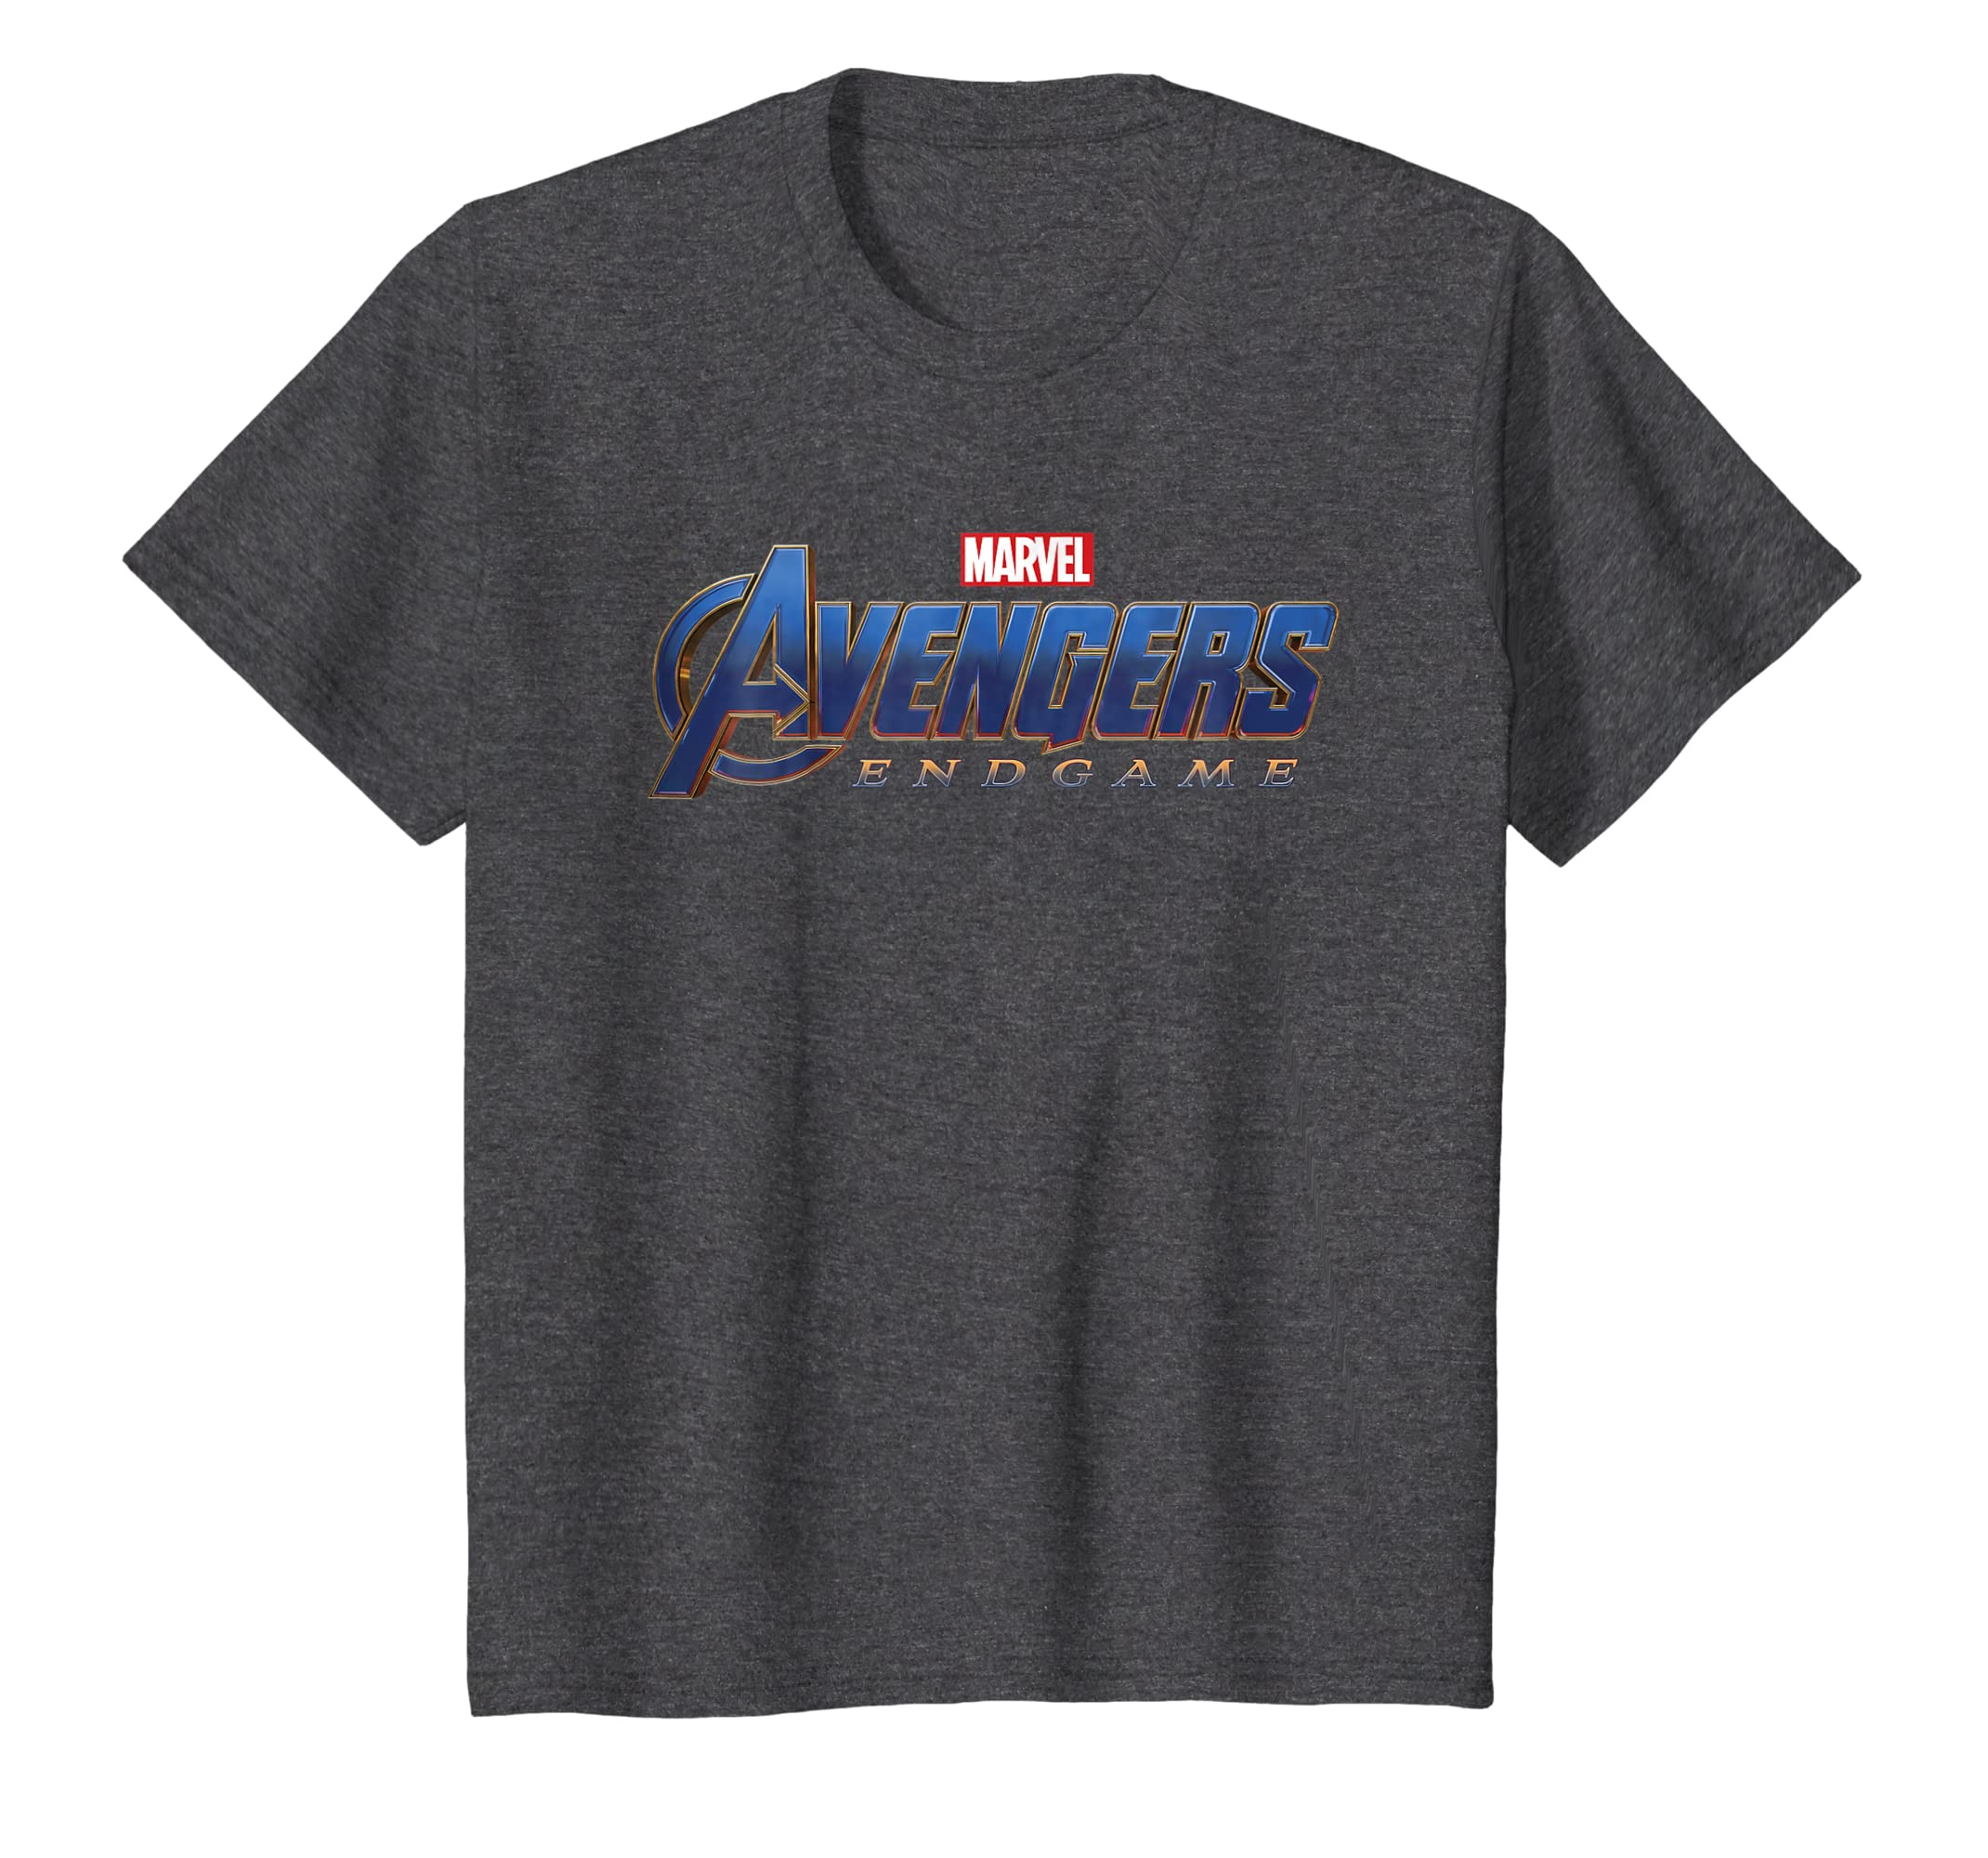 ba1947a79abe Amazon.com  Marvel Avengers Endgame Movie Logo Graphic T-Shirt  Clothing